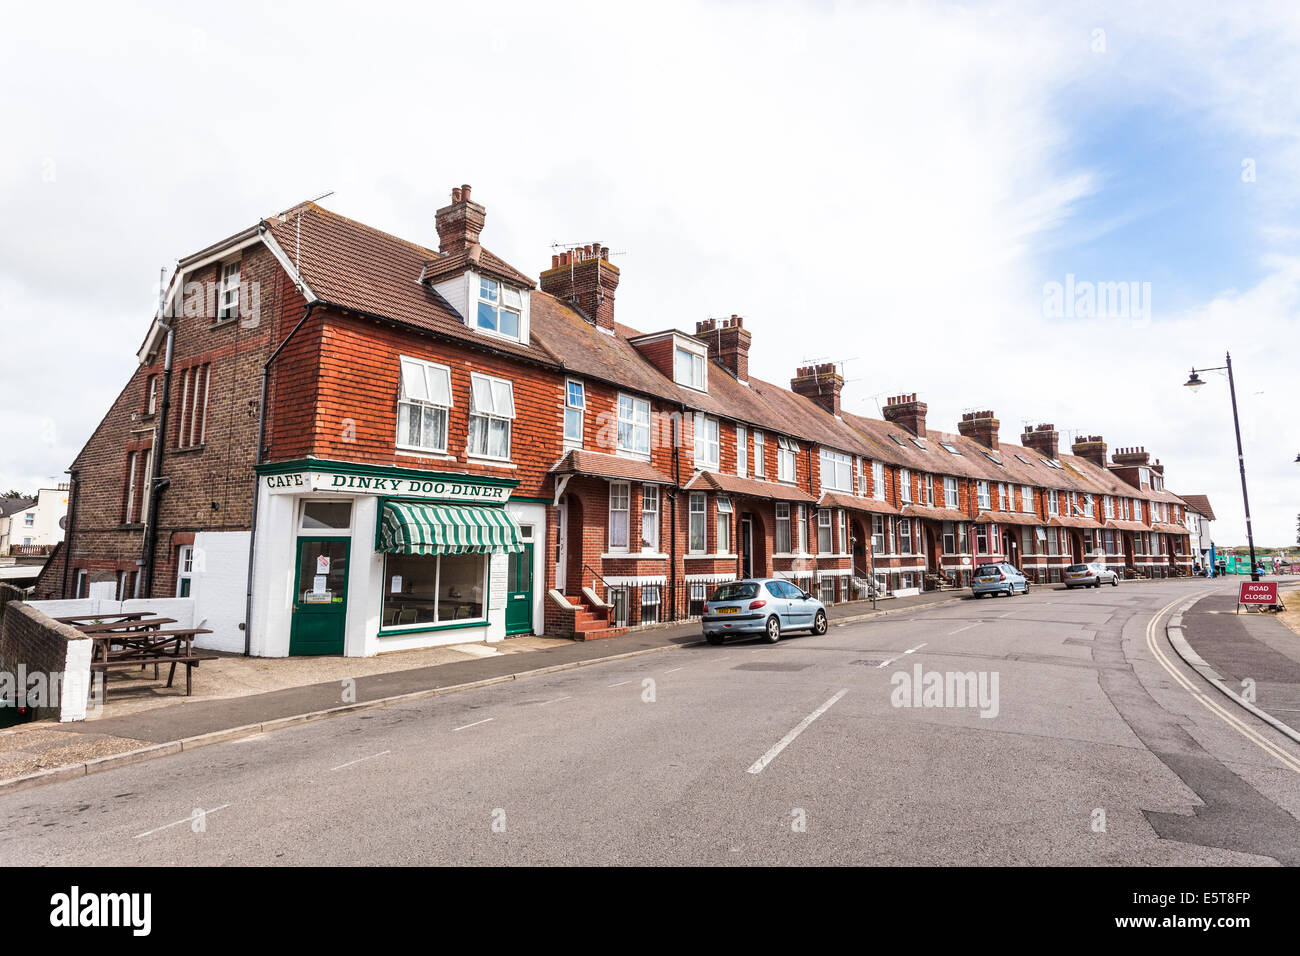 Row of terraced houses, Worthing, West Sussex, England, UK - Stock Image